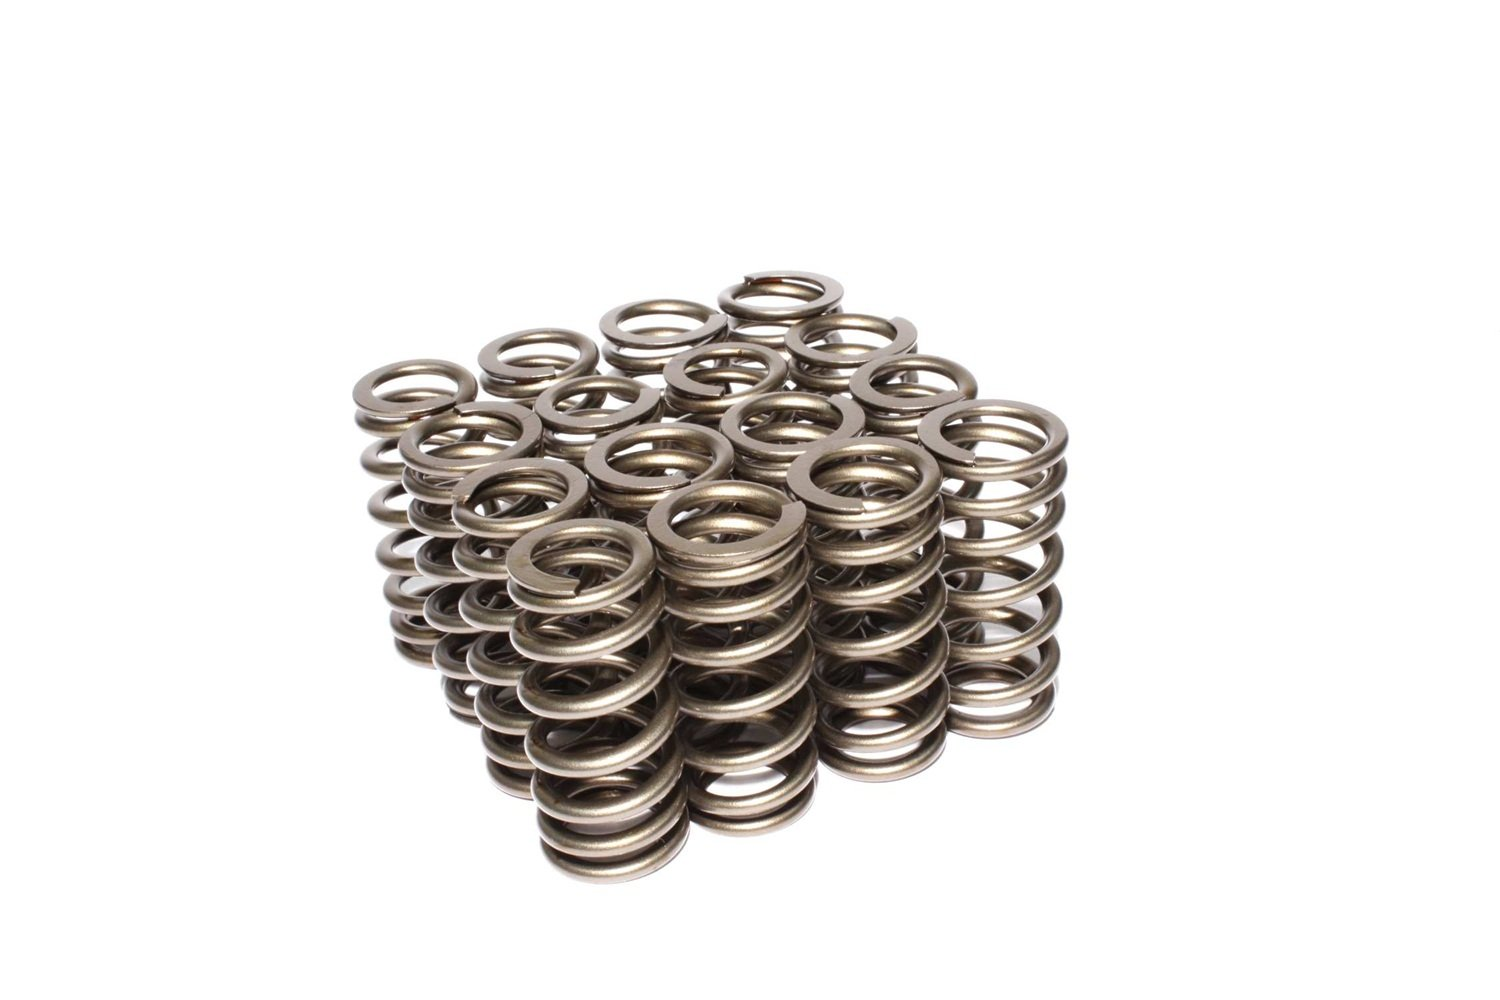 Competition Cams 26125-16 High Load Beehive Valve Spring for Ford 4.6L and 5.4L Modular 2 Valve Engines